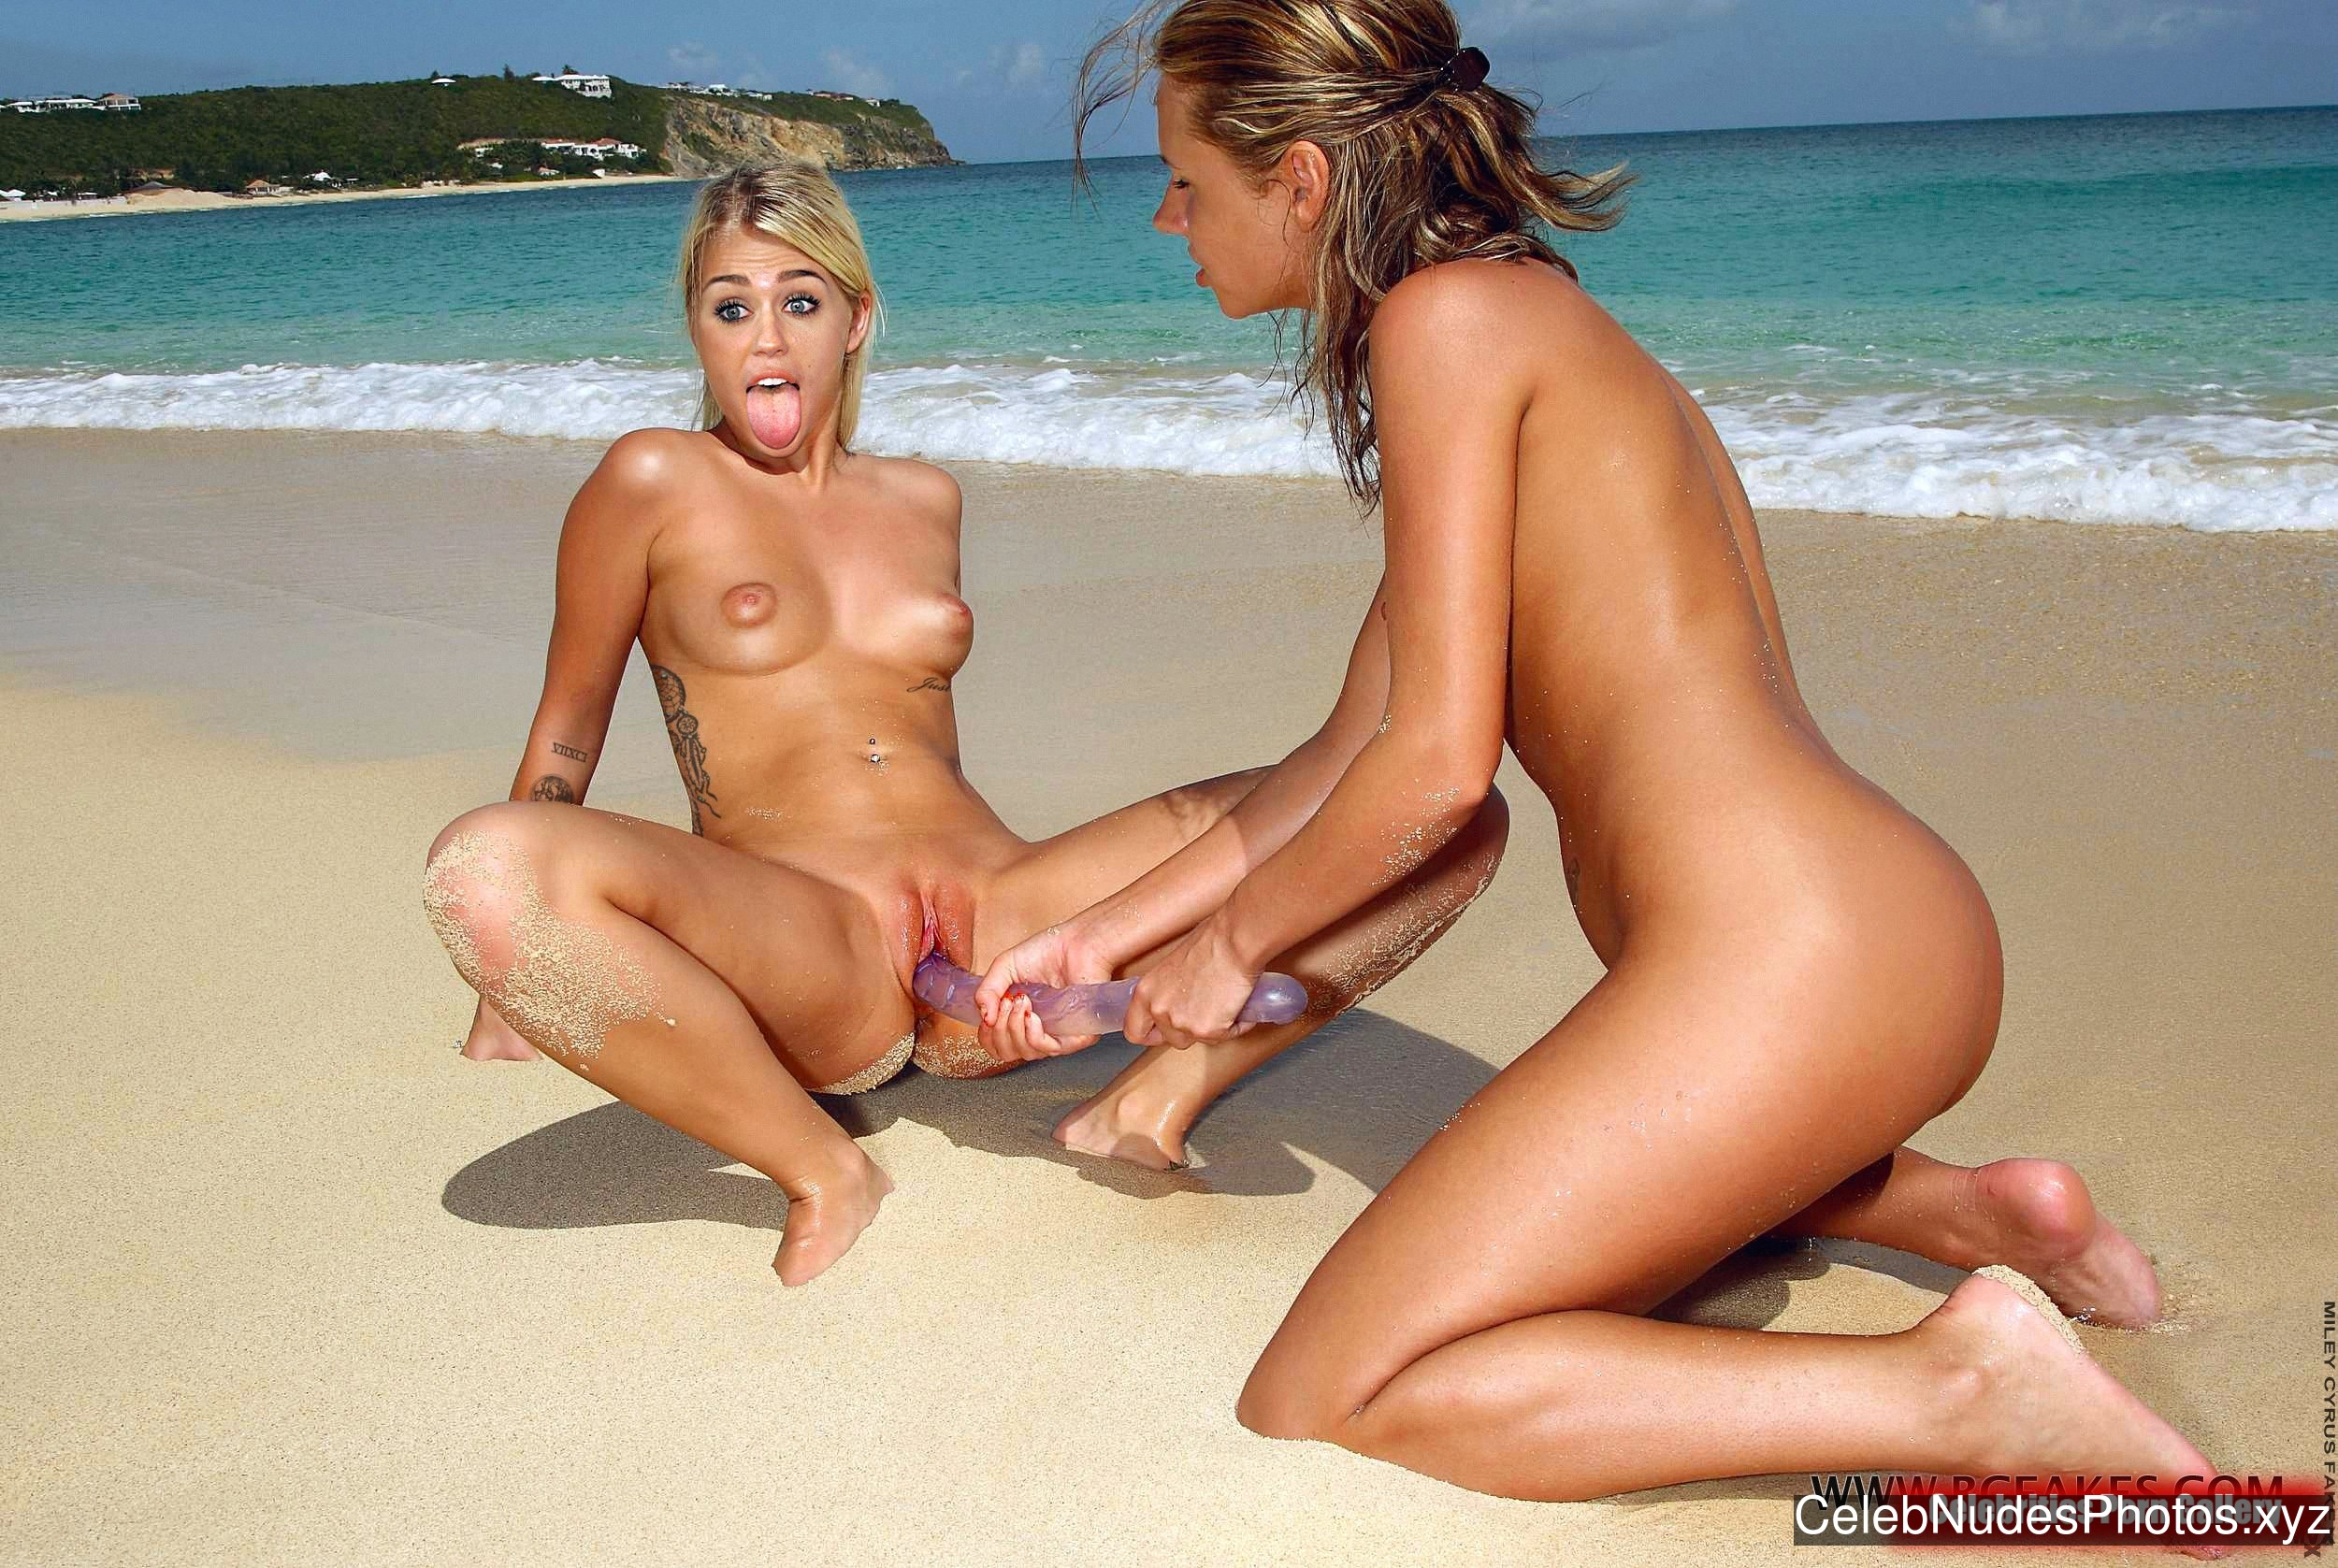 Miley Cyrus naked celebrities